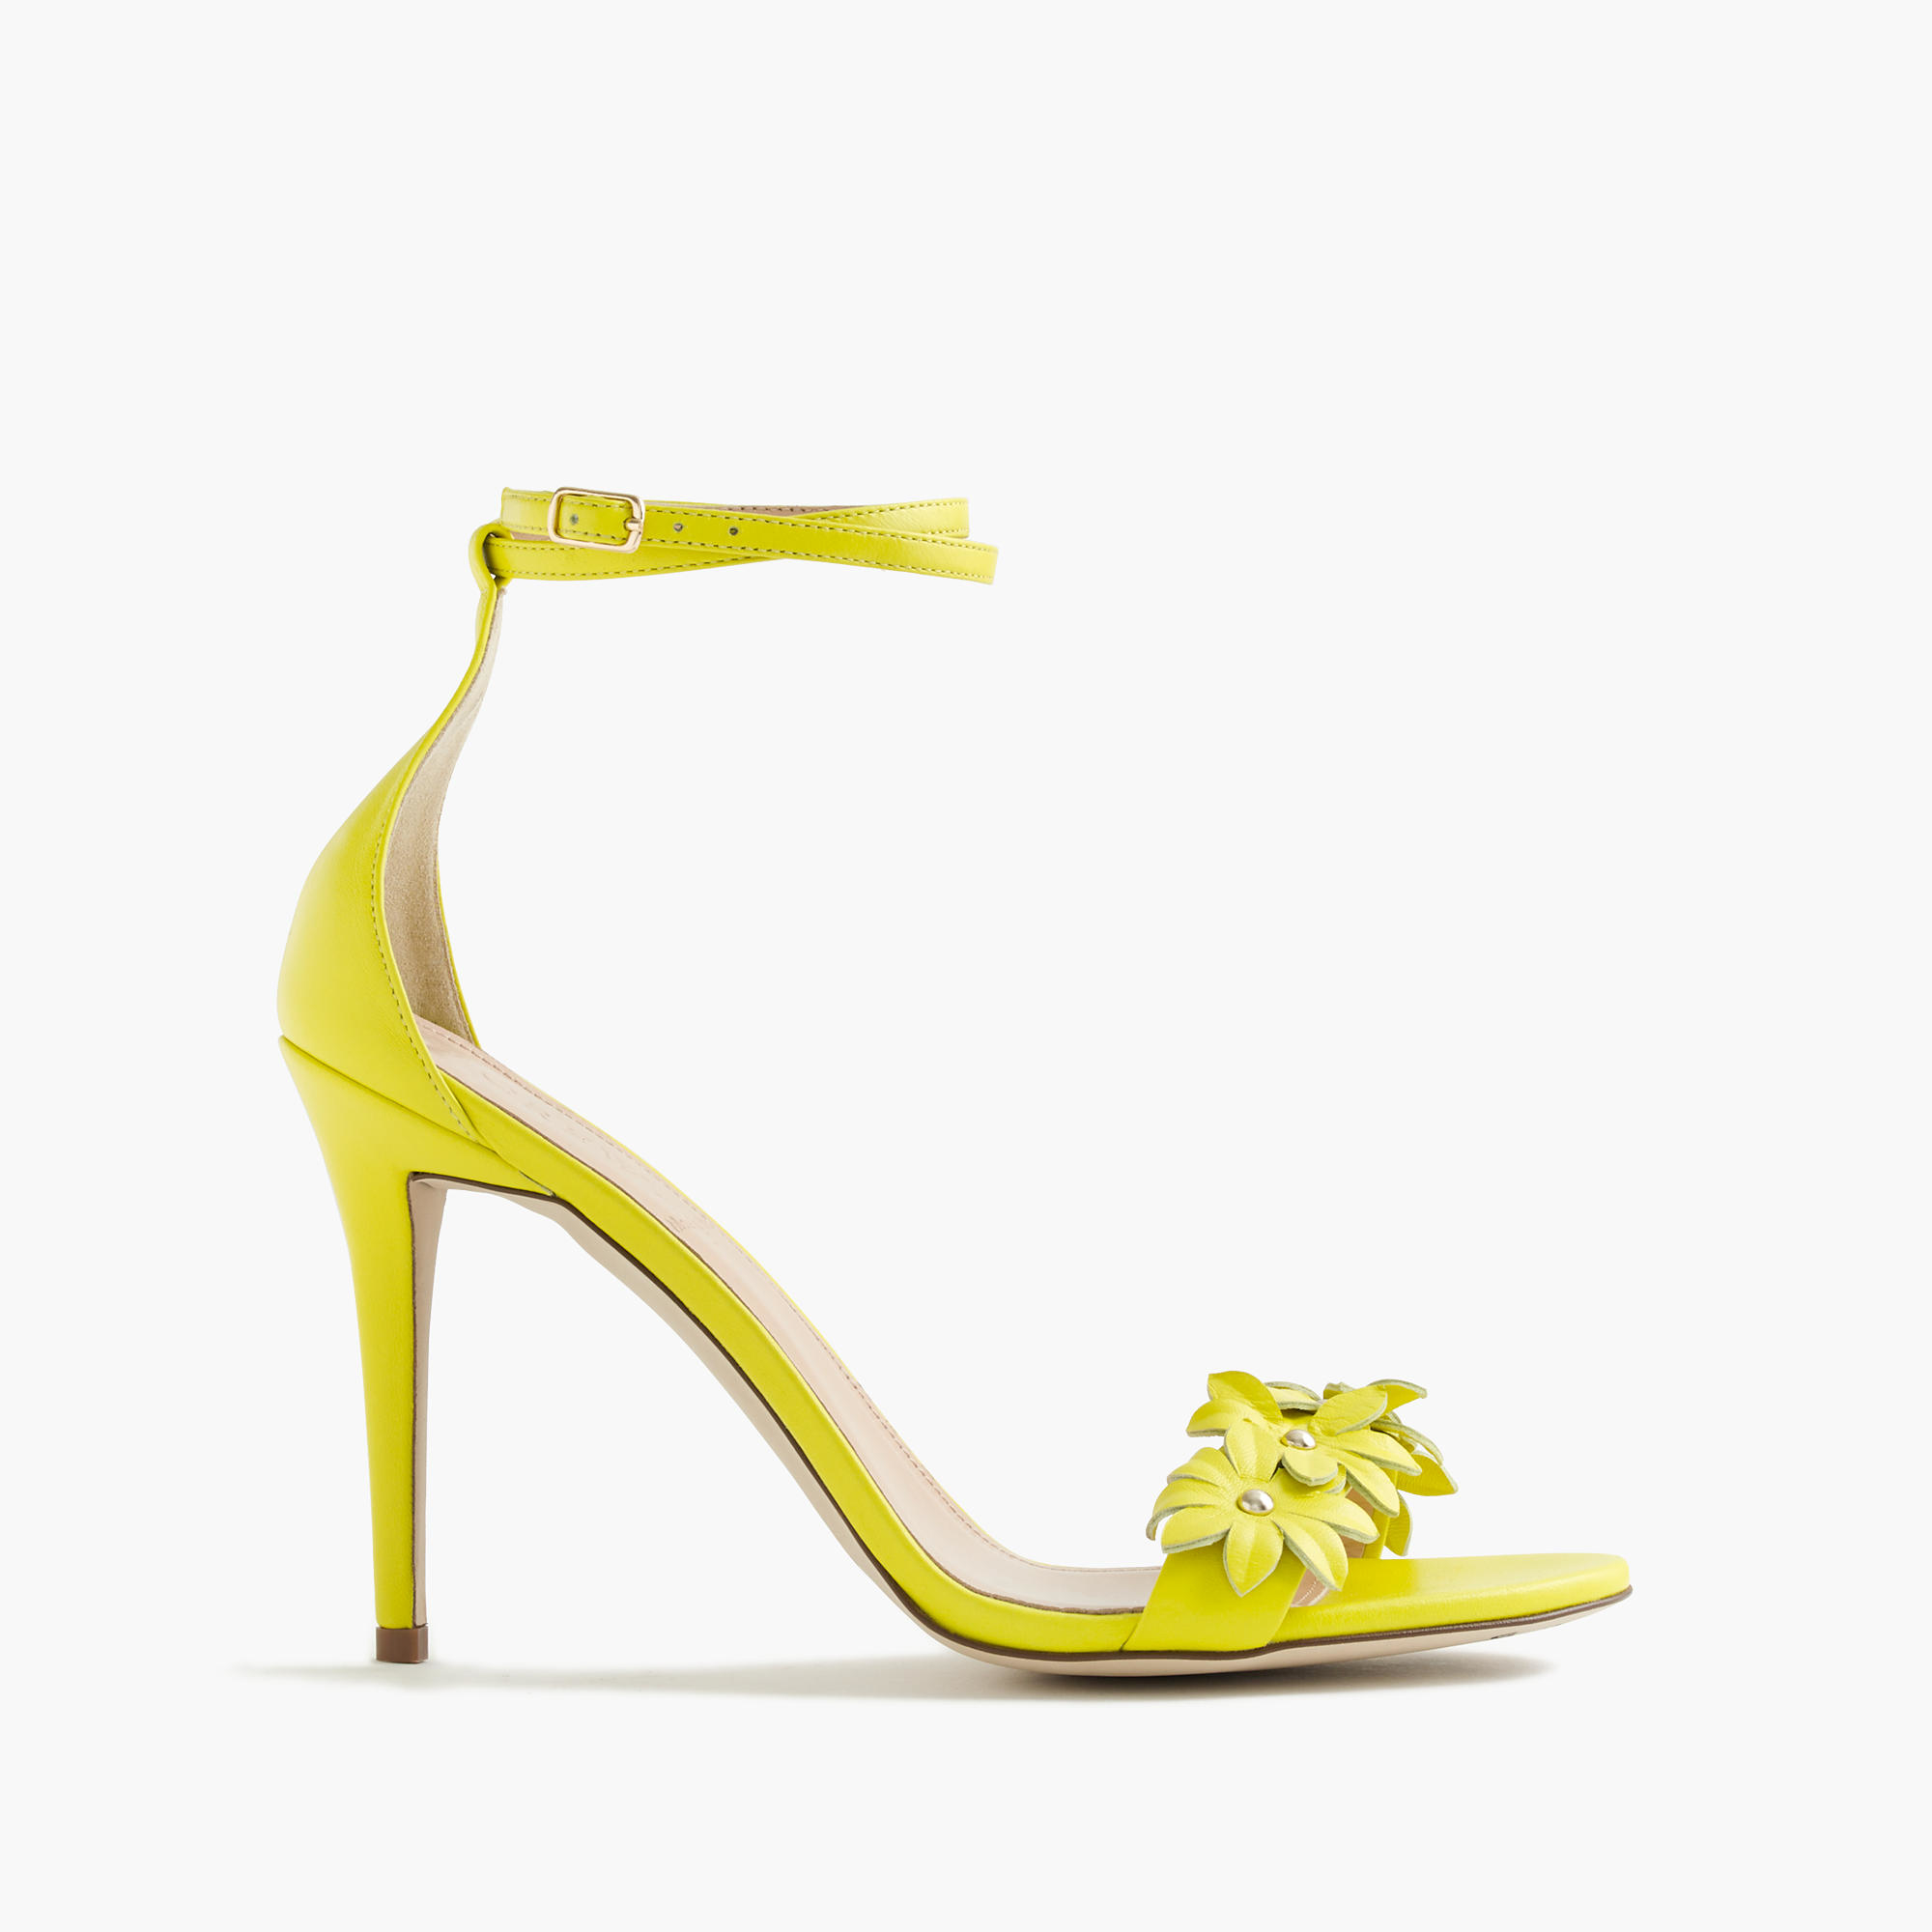 Lemon Yellow High Heel Court Shoes - Is Heel